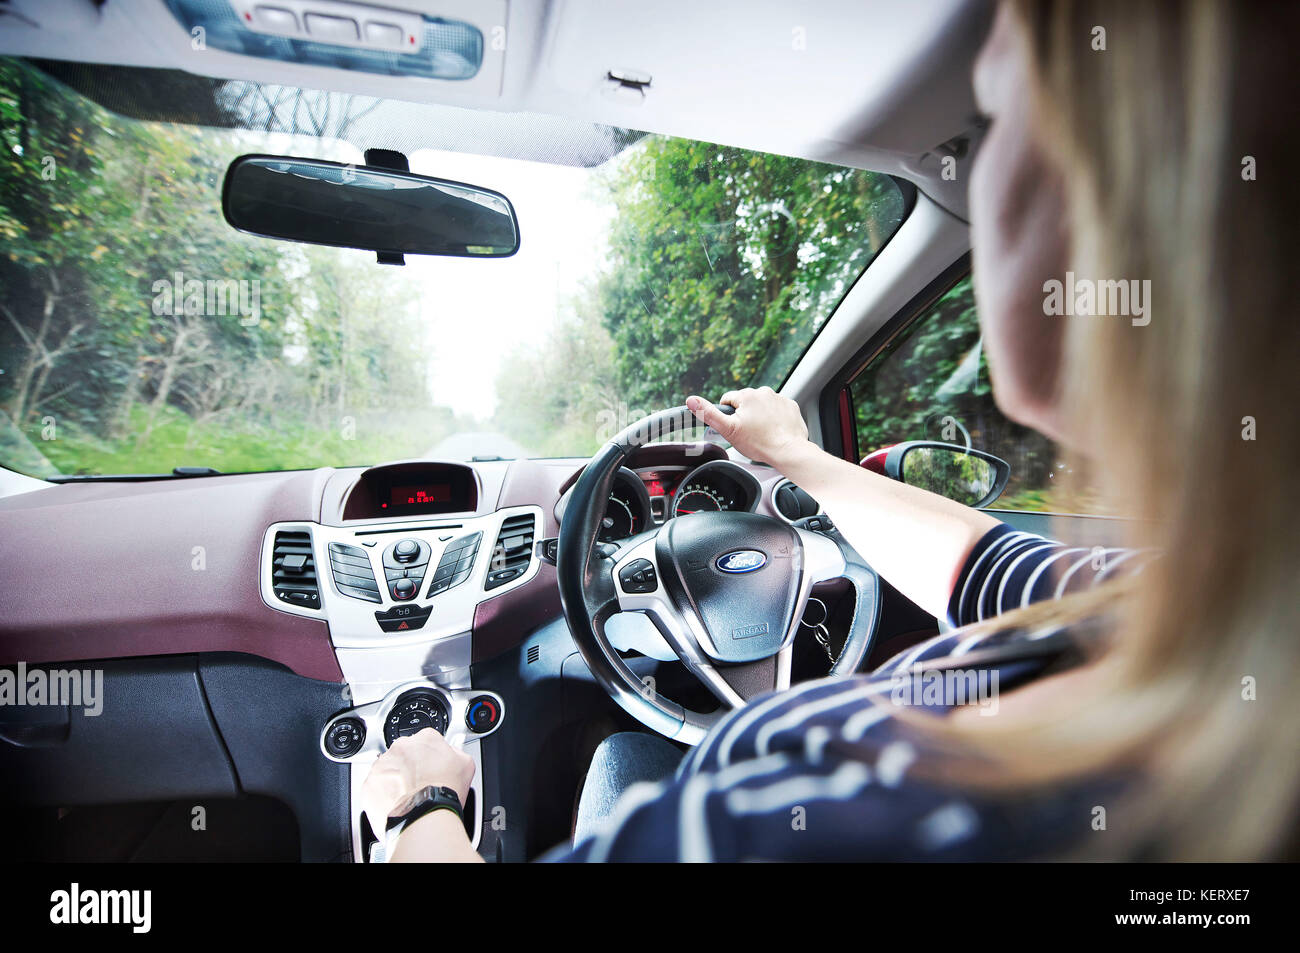 White female is driving a small car on here daily commute to work - Stock Image